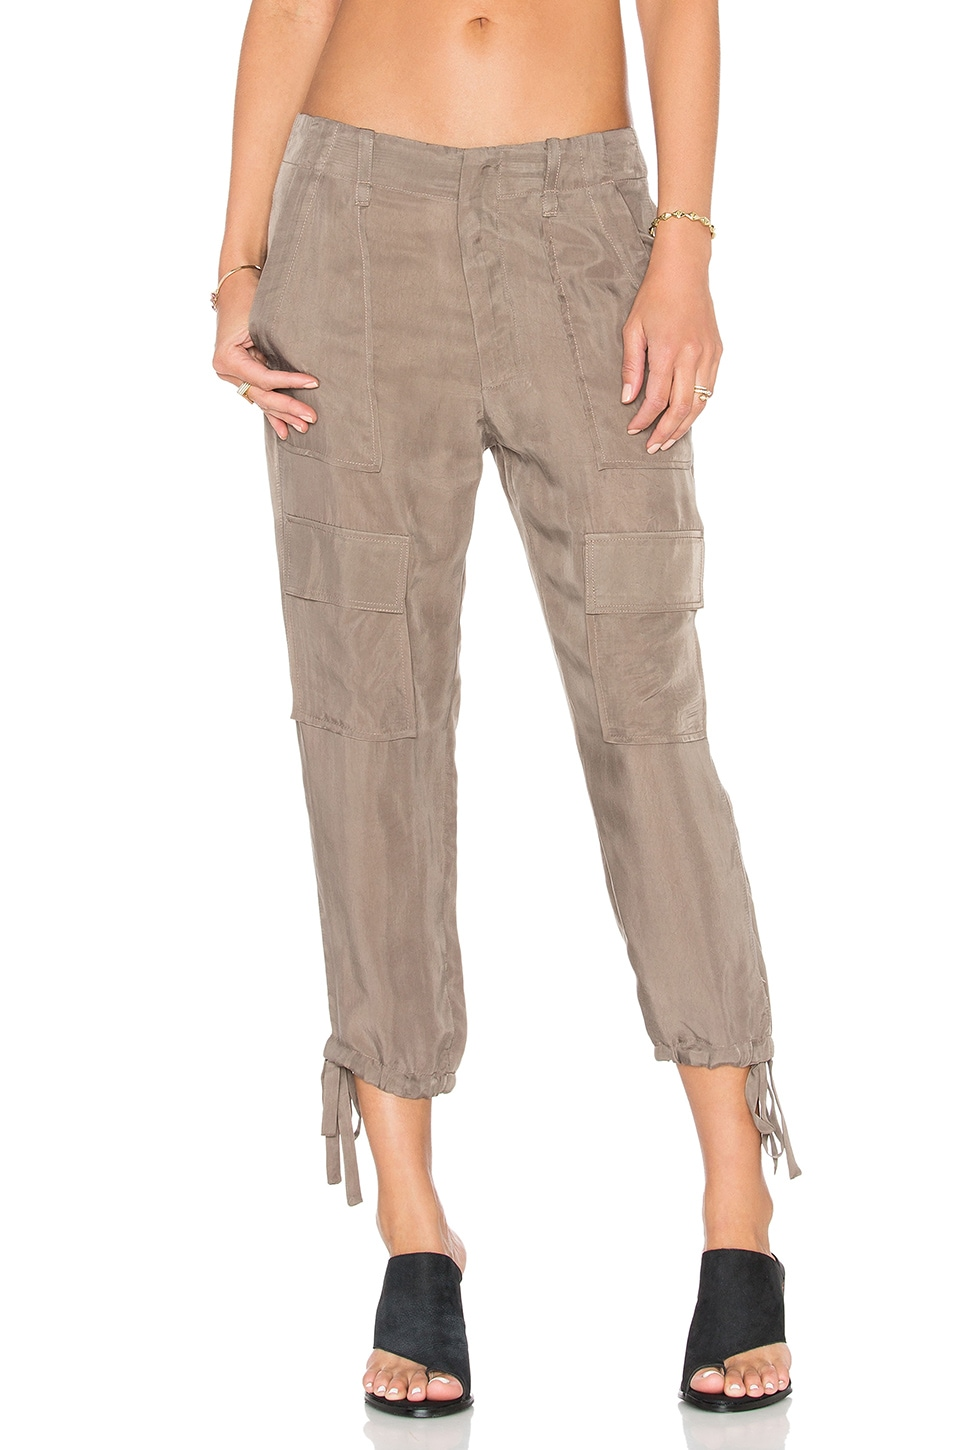 Get Right Cargo Pant by Calvin Rucker